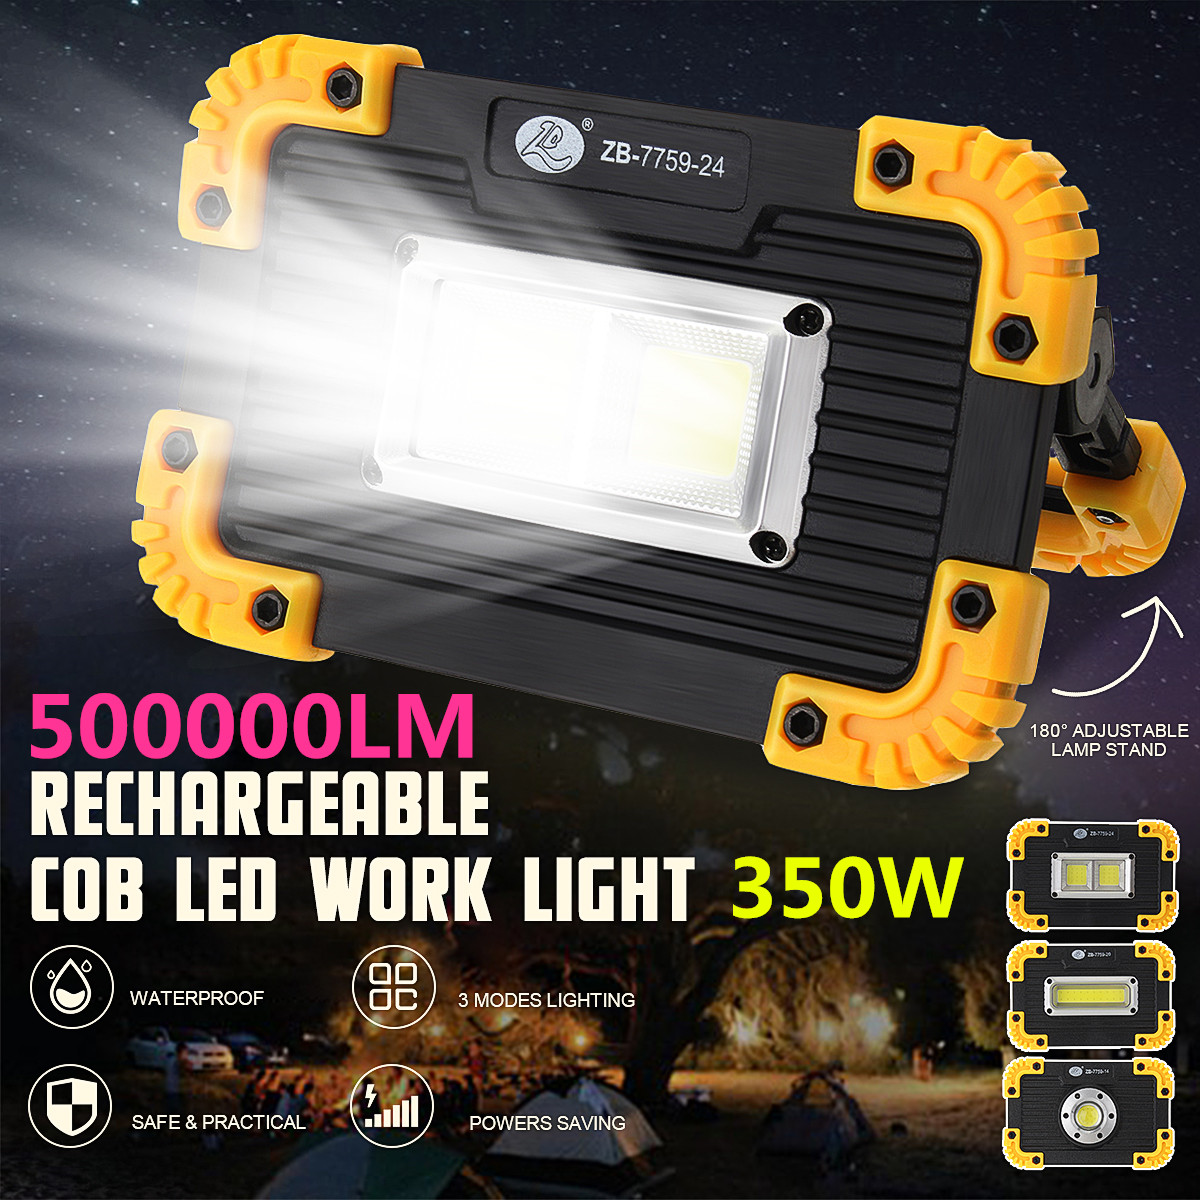 350W COB LED Floodlight USB Charging 5-8 Hours Spot Work Lamp Outdoor Camping Portable Led Searchlight Rechargeable Battery